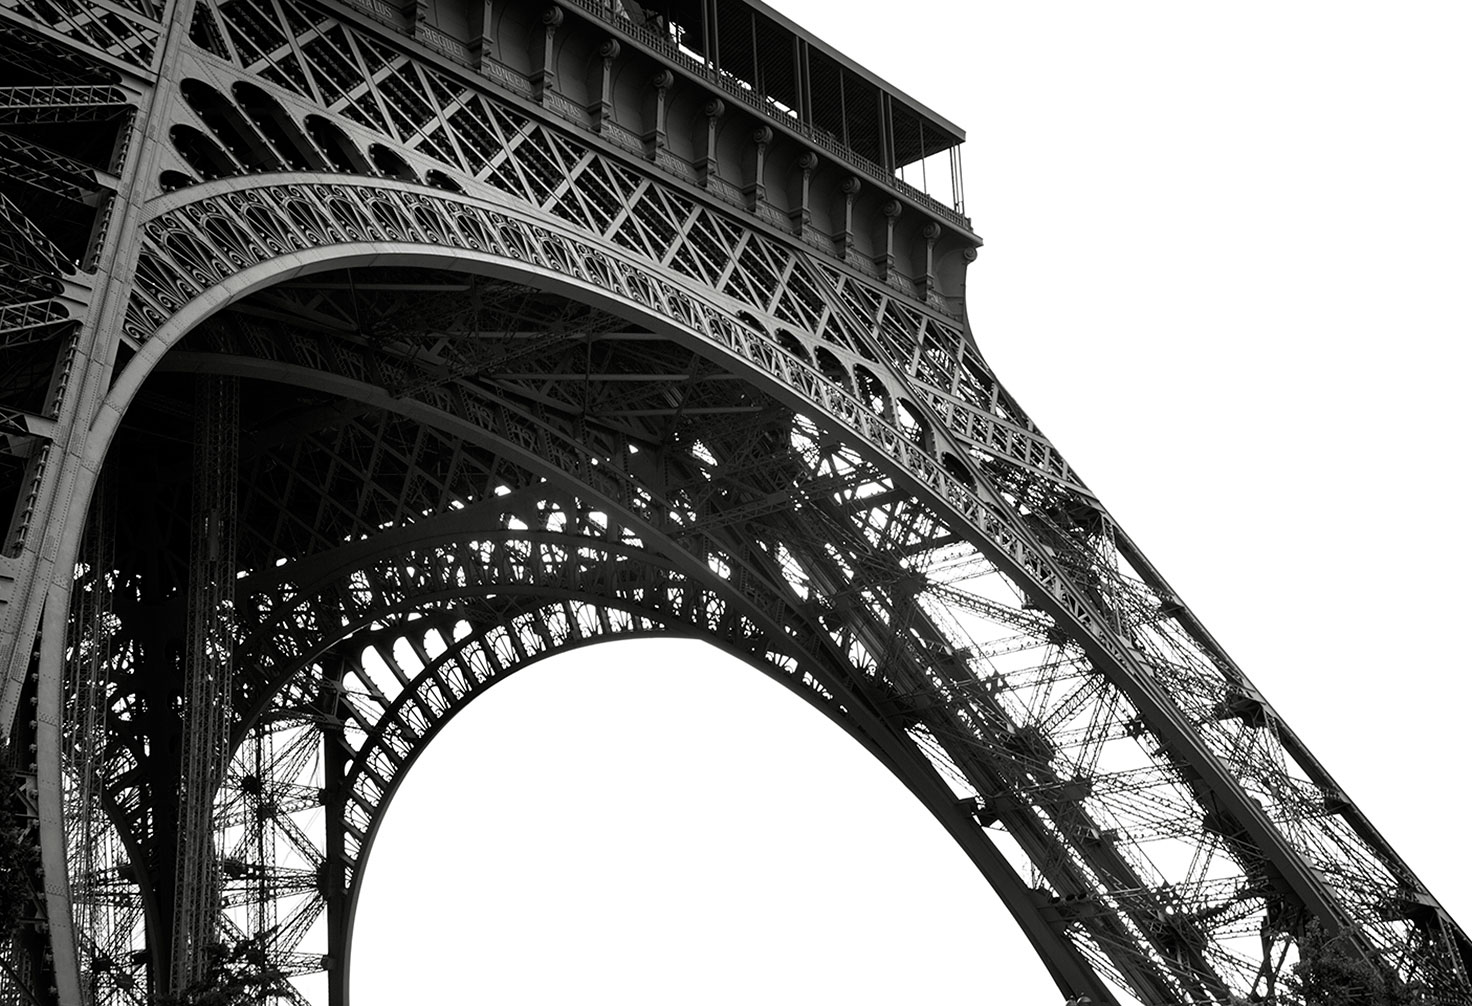 Detial of the  Eiffel Tower 1 of 10